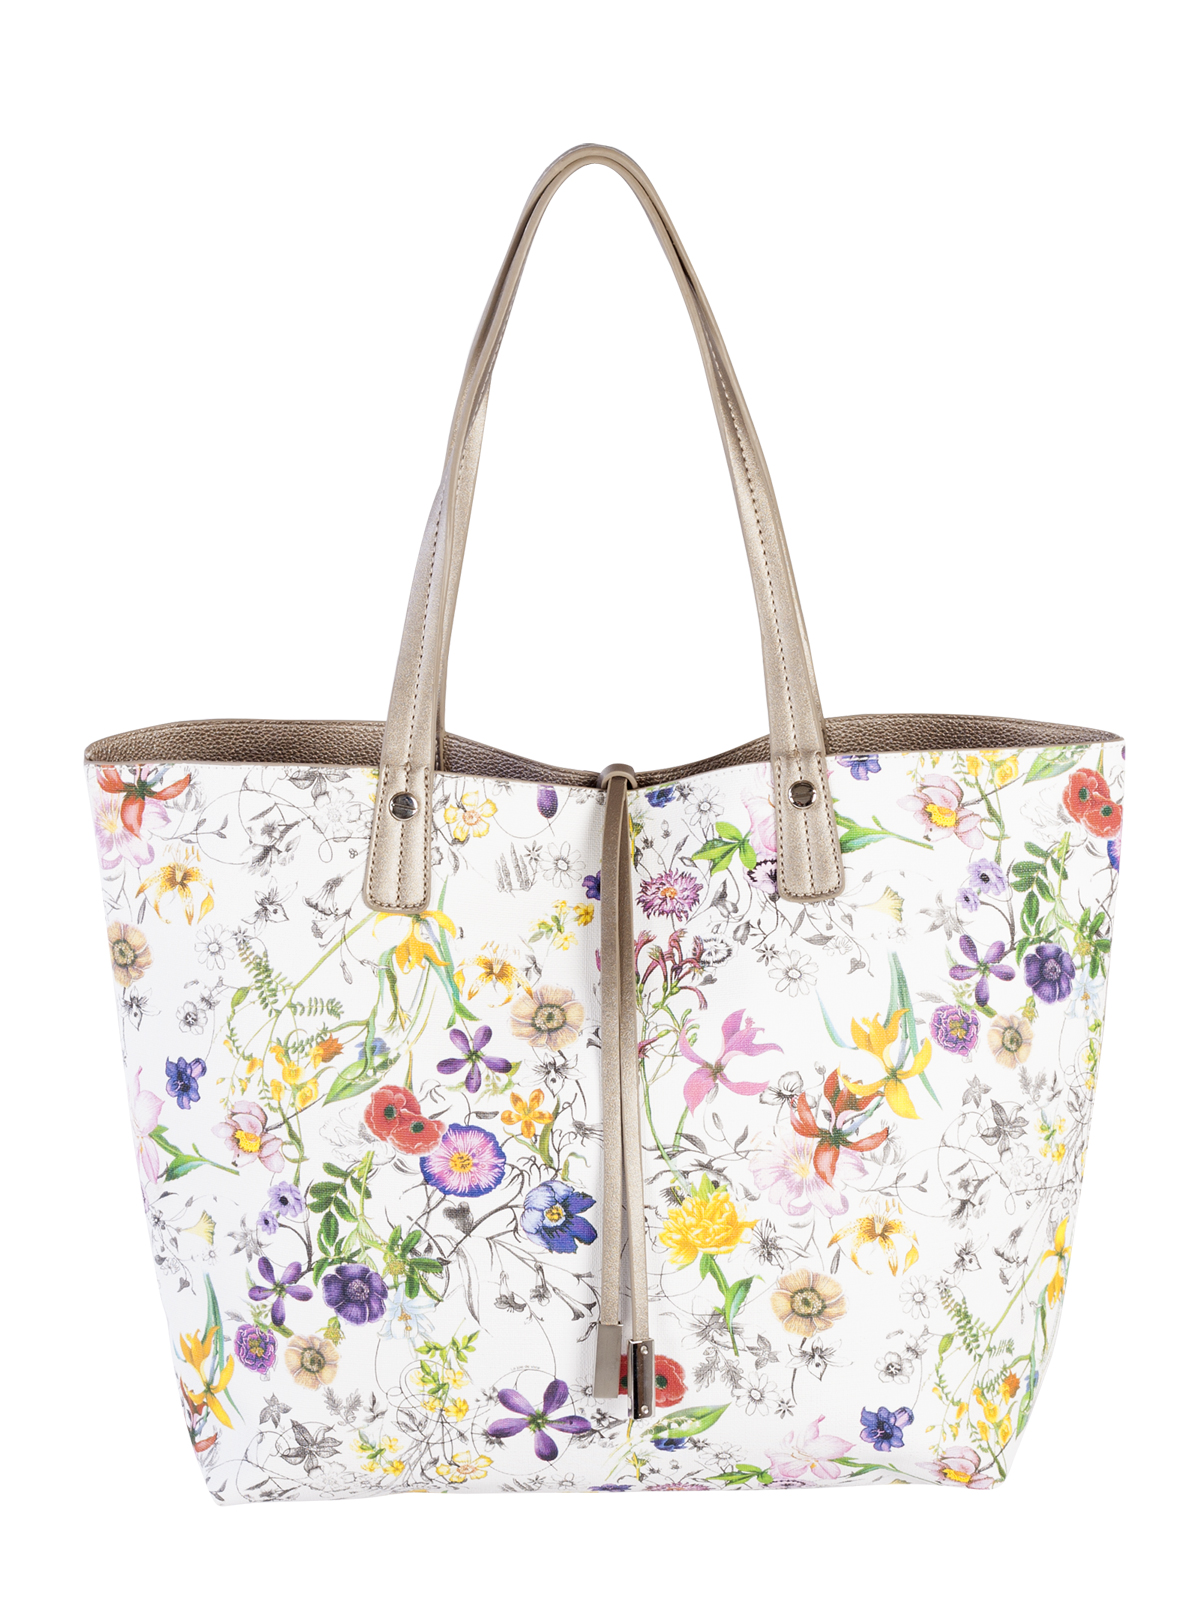 Simplify your airport experience with a well-sized, cleverly designed travel bag. The bold, bright florals of this David Jones reversible solid, floral/faux leather tote, with a decorative dangle and trimmed with silver tone hardware, are sure to liven up the dreariest of overhead bins. It's a fun, budget-friendly option for the traveller who's not afraid to make a statement. $60; holiday.ca